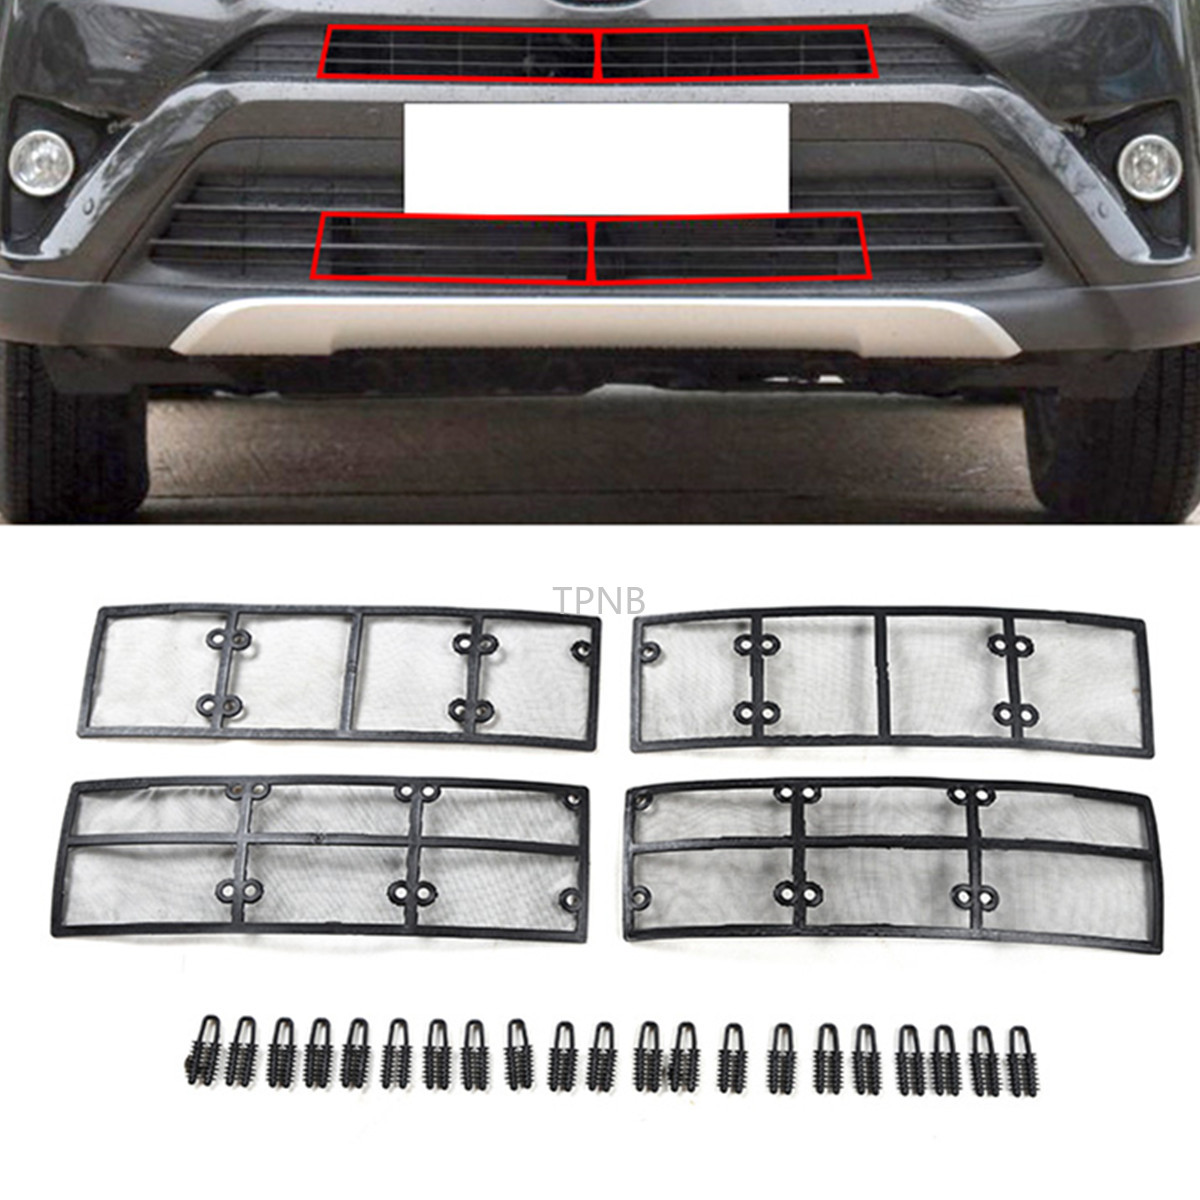 4PCS/set Car Stainless Steel+plastic Front Grille Insect Net for <font><b>Toyota</b></font> <font><b>RAV4</b></font> 2016 2017 <font><b>2018</b></font> <font><b>Accessories</b></font> image